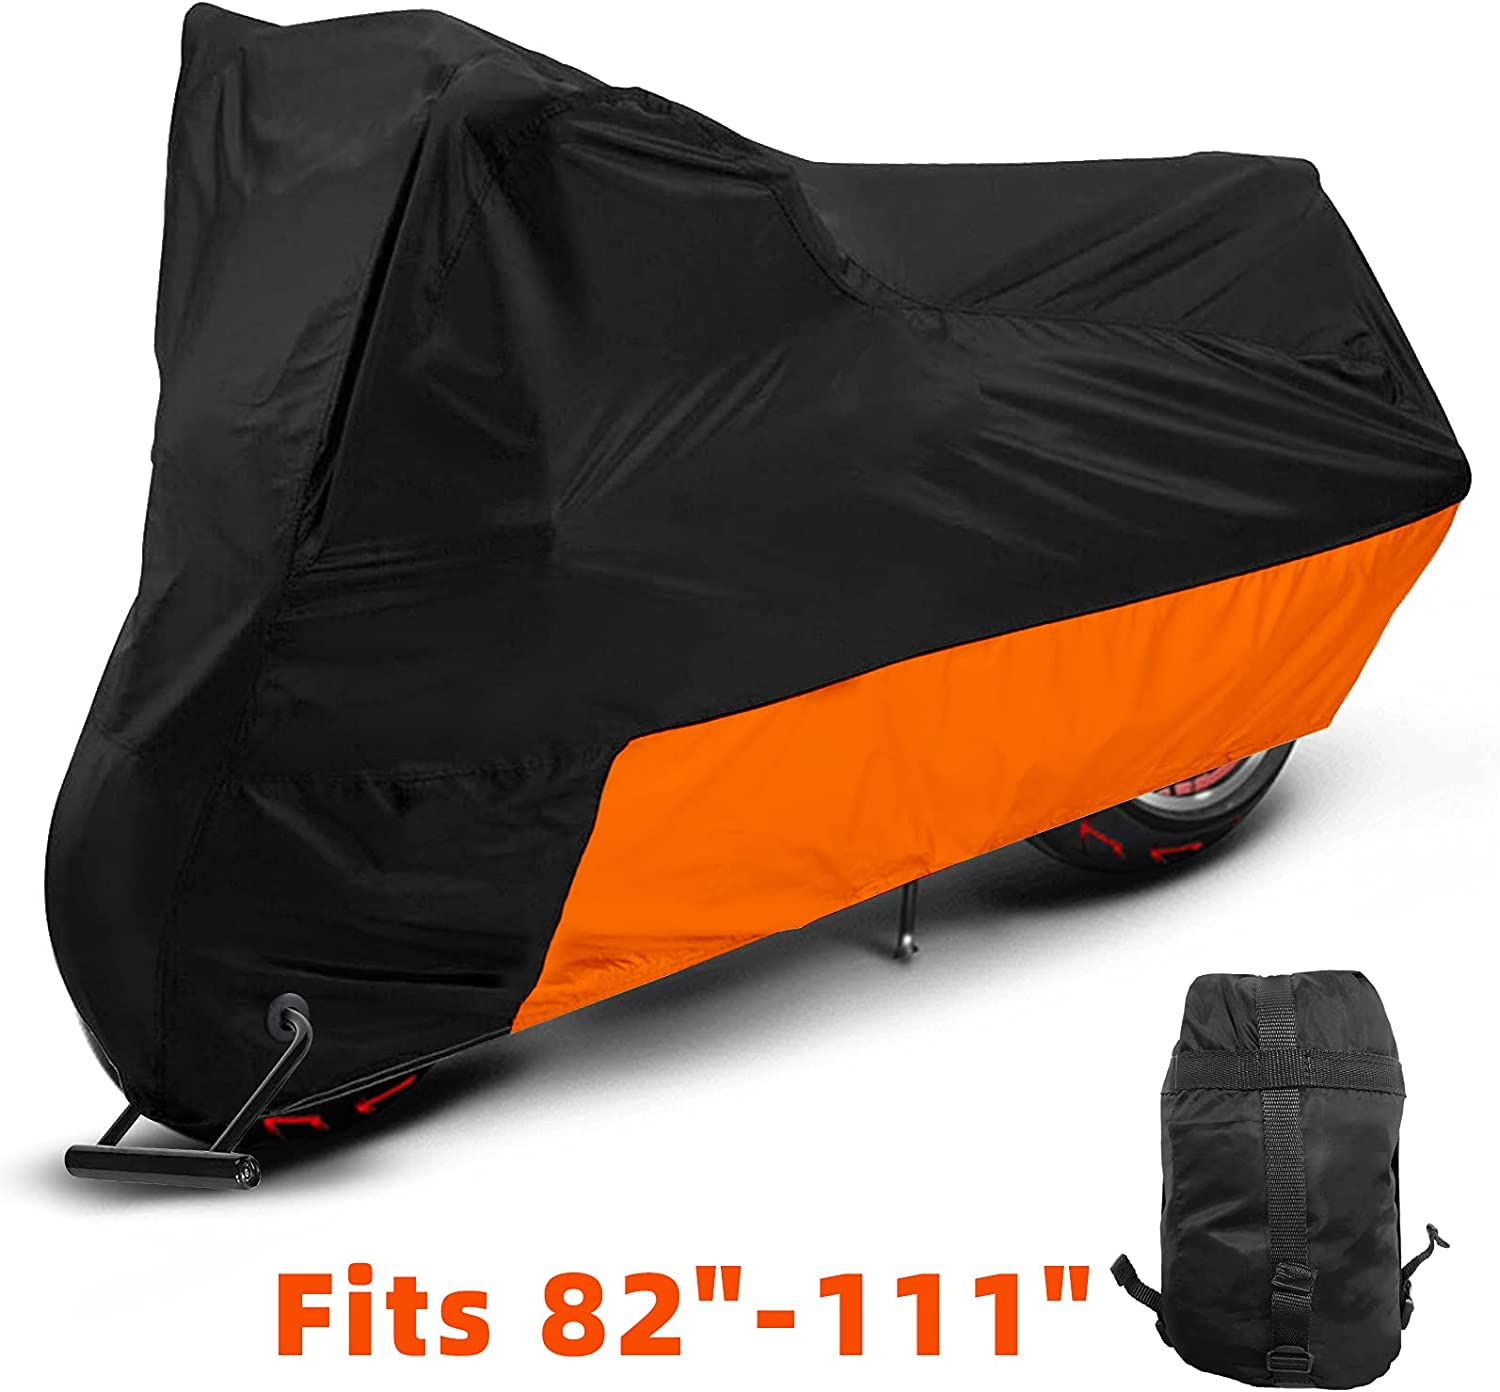 35% Special Campaign OFF Vinpatio Motorcycle Cover Waterproof 150D Proof and Thicker Tear